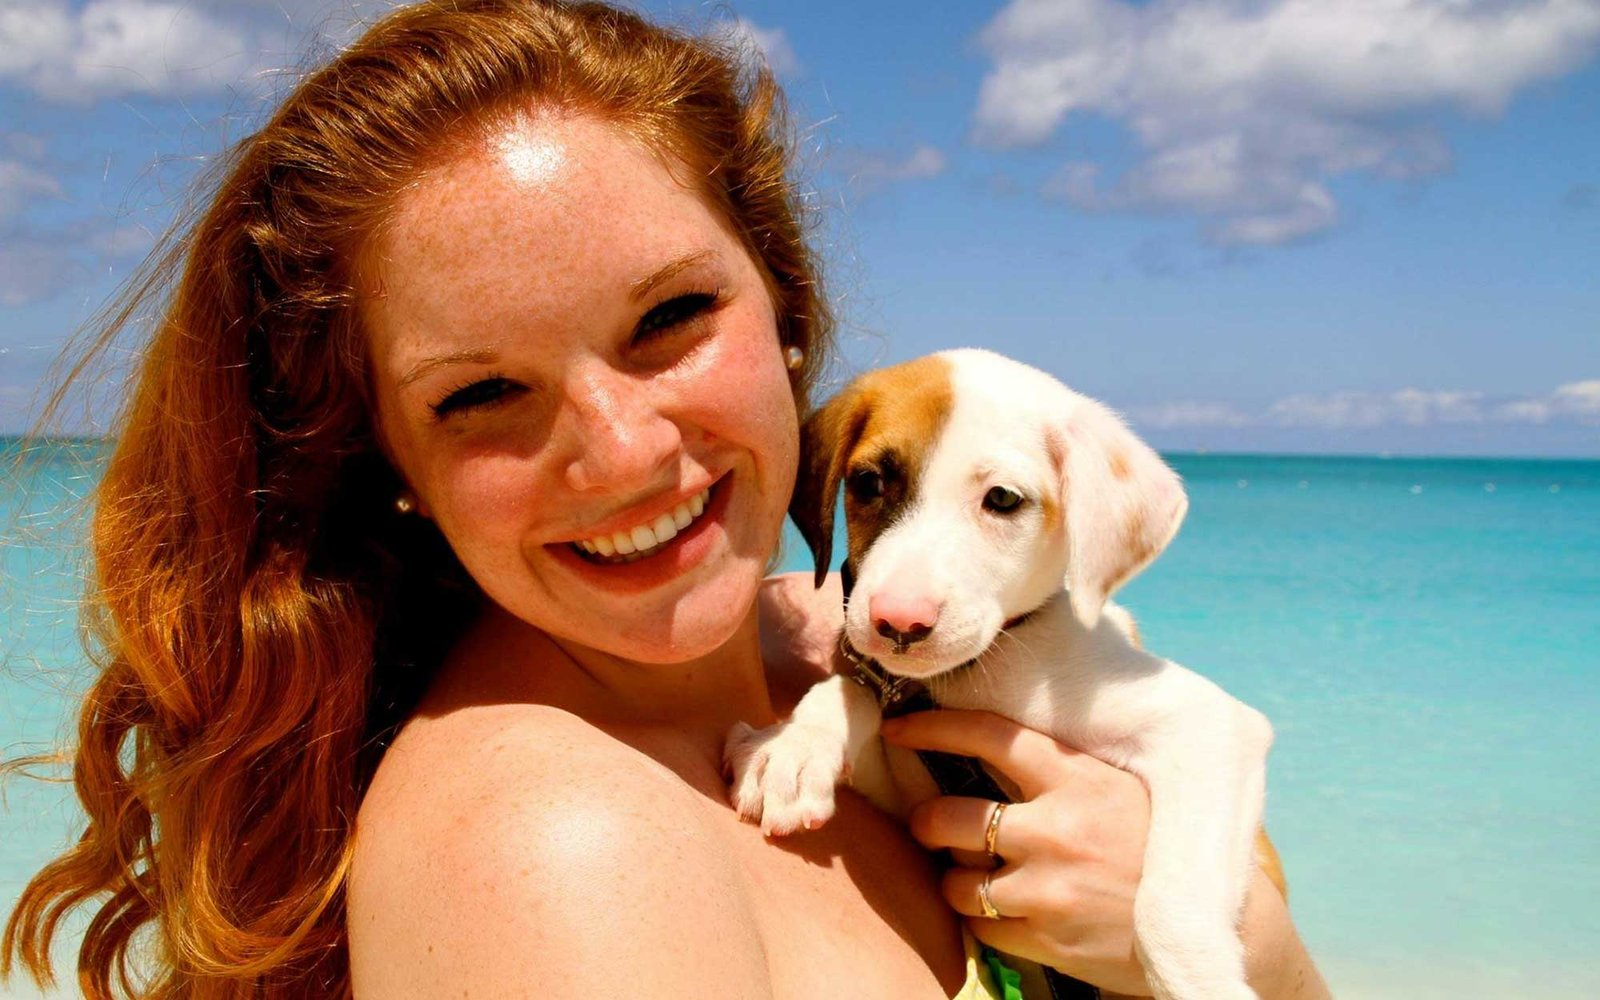 Rescue Dogs Puppies For Adoption This Tropical Island Is Filled With Puppies You Can Adopt Travel